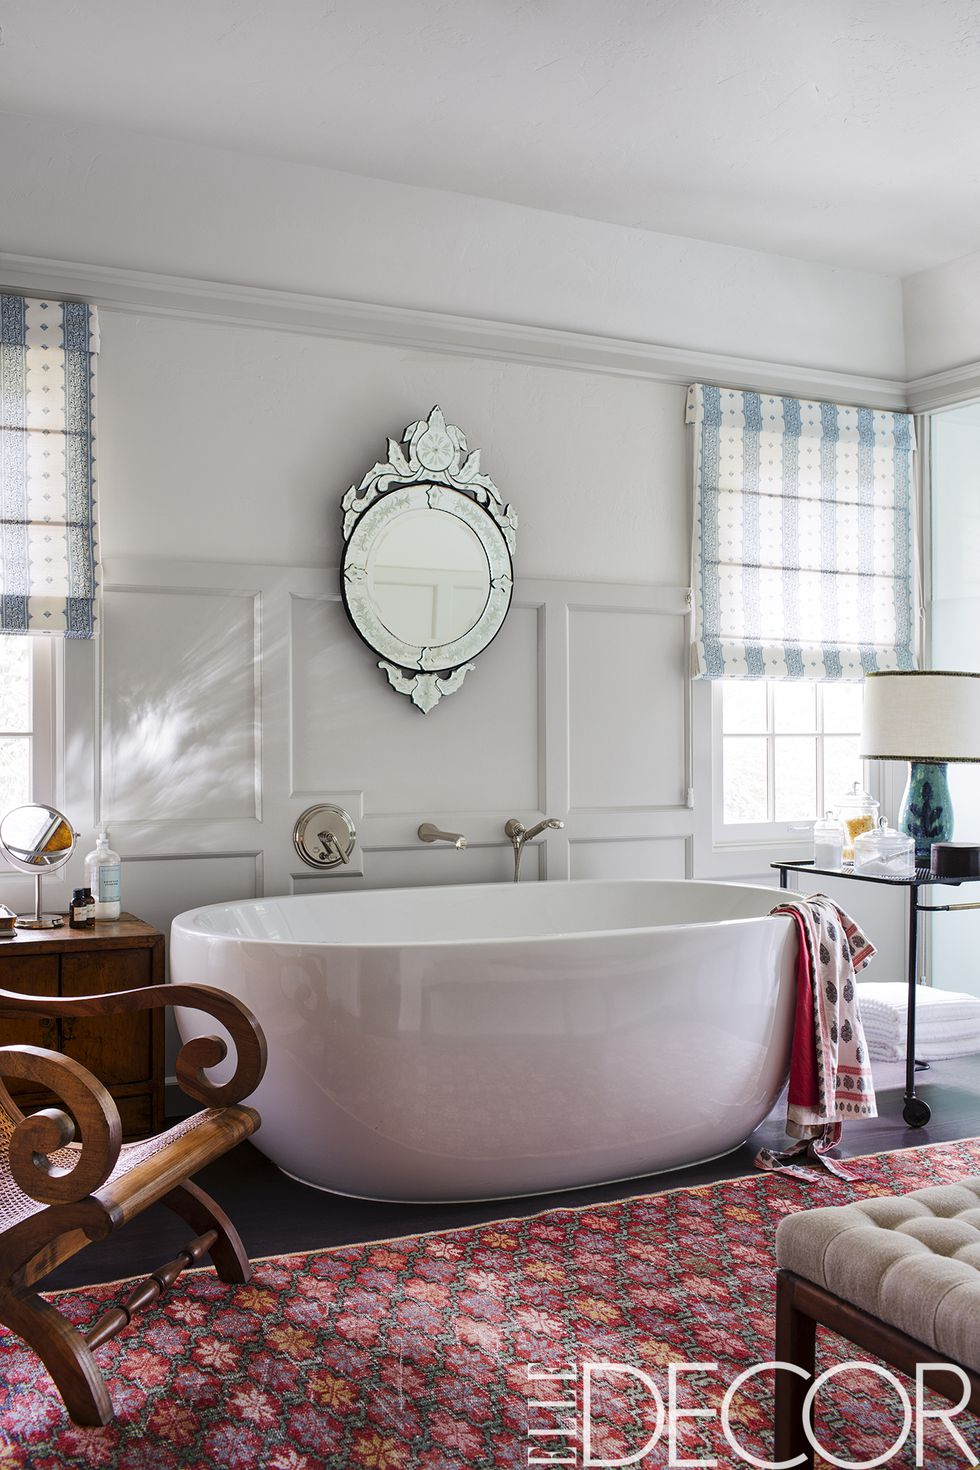 The master bath features a Venetian mirror, a 1950s bar cart by    Mathieu Matégot   , and a vintage rug, the flooring is oak and the walls are painted in    Benjamin Moore's Navajo White   .